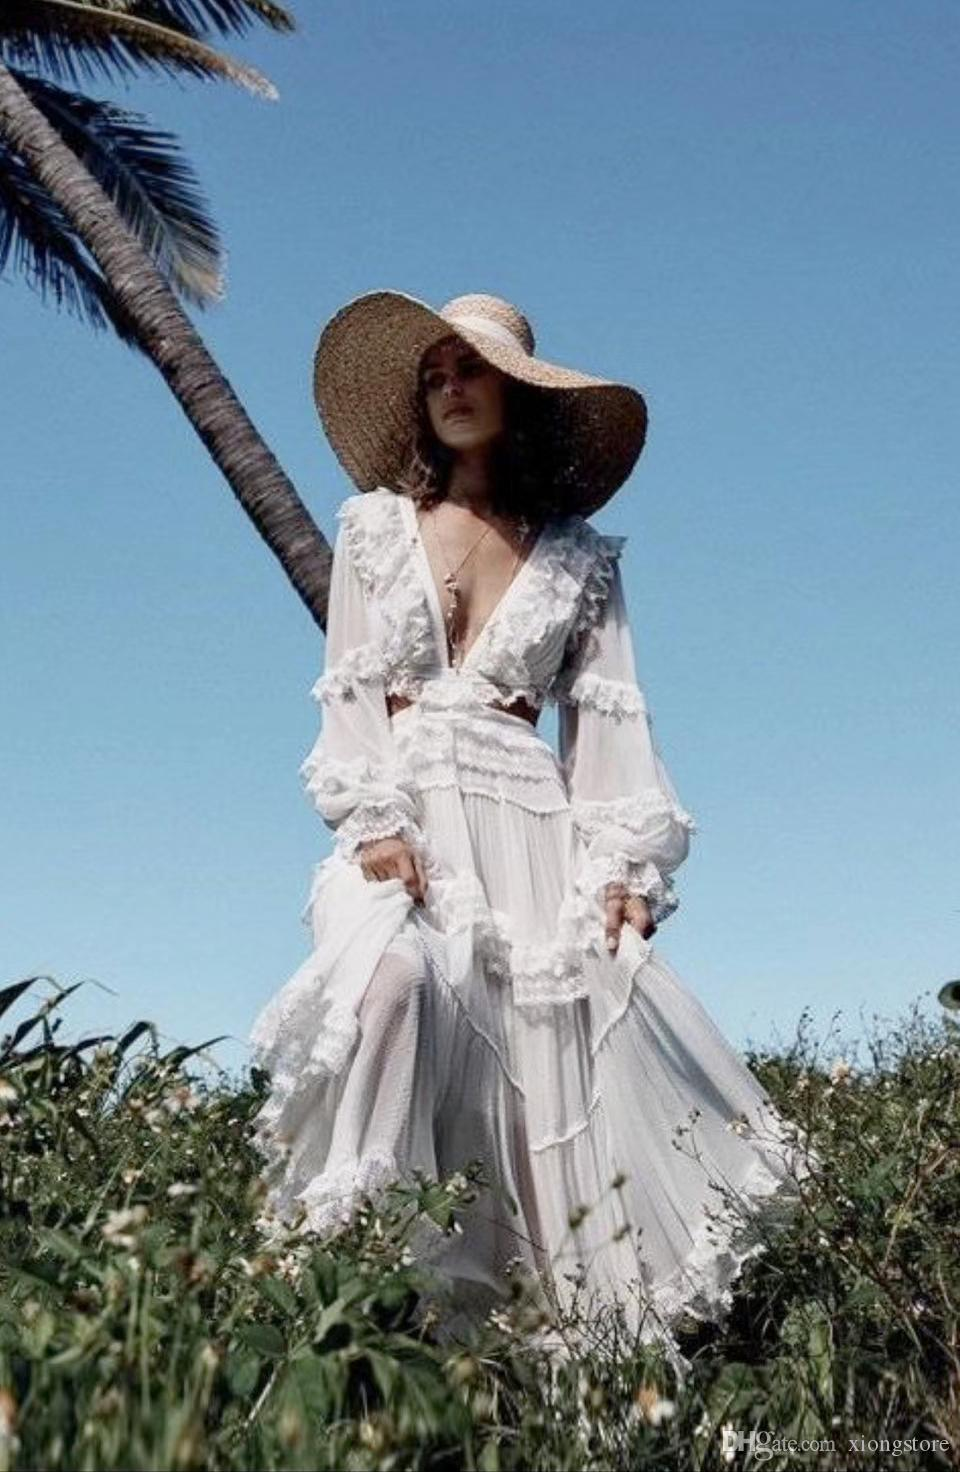 Elegant White Lace Patchwork Pleated Long Sleeve 2019 Women Dresses Summer Bohemian Ruffles Chiffon Maxi Dress Designer Runway Dress